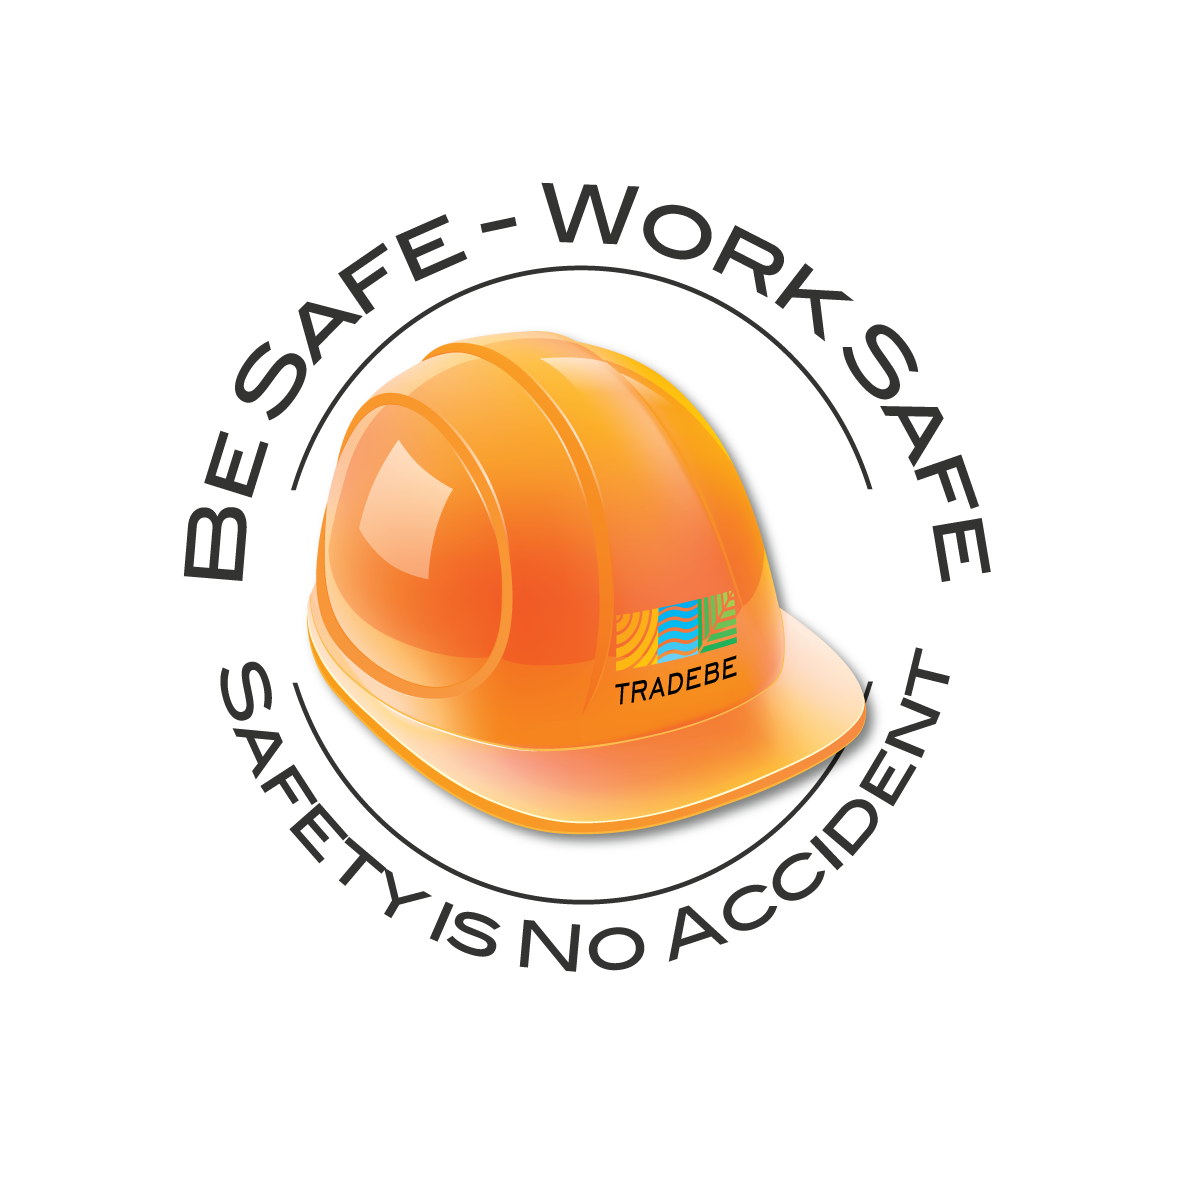 tradebe-usa-safety-slogan-be-safe-work-safe